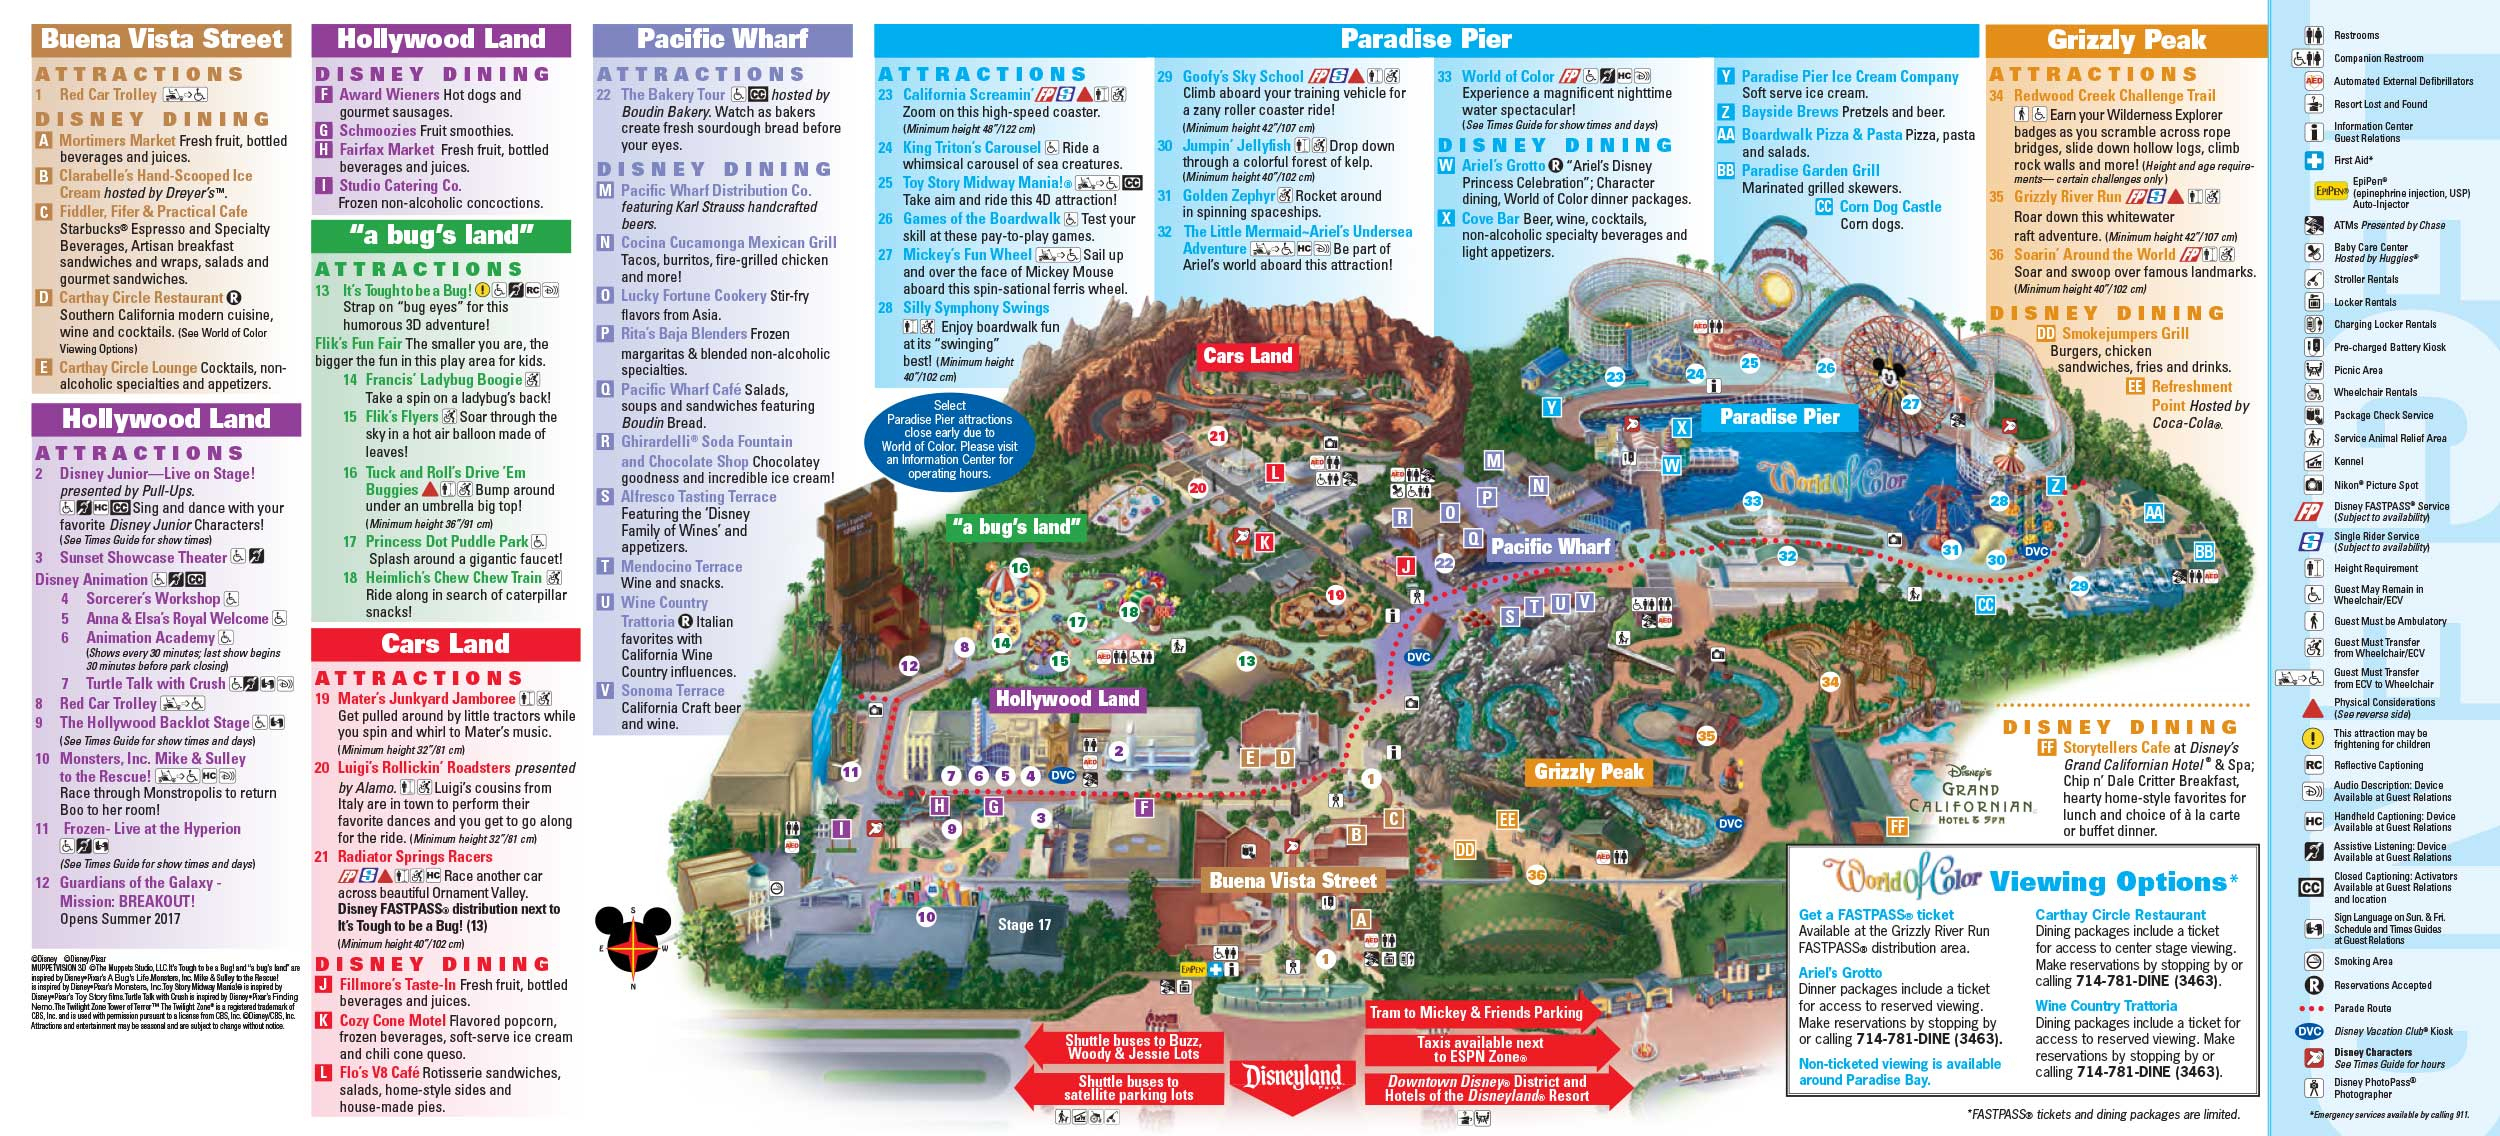 Disney California Adventure Map Blank Maps Of California Amusement - Southern California Amusement Parks Map